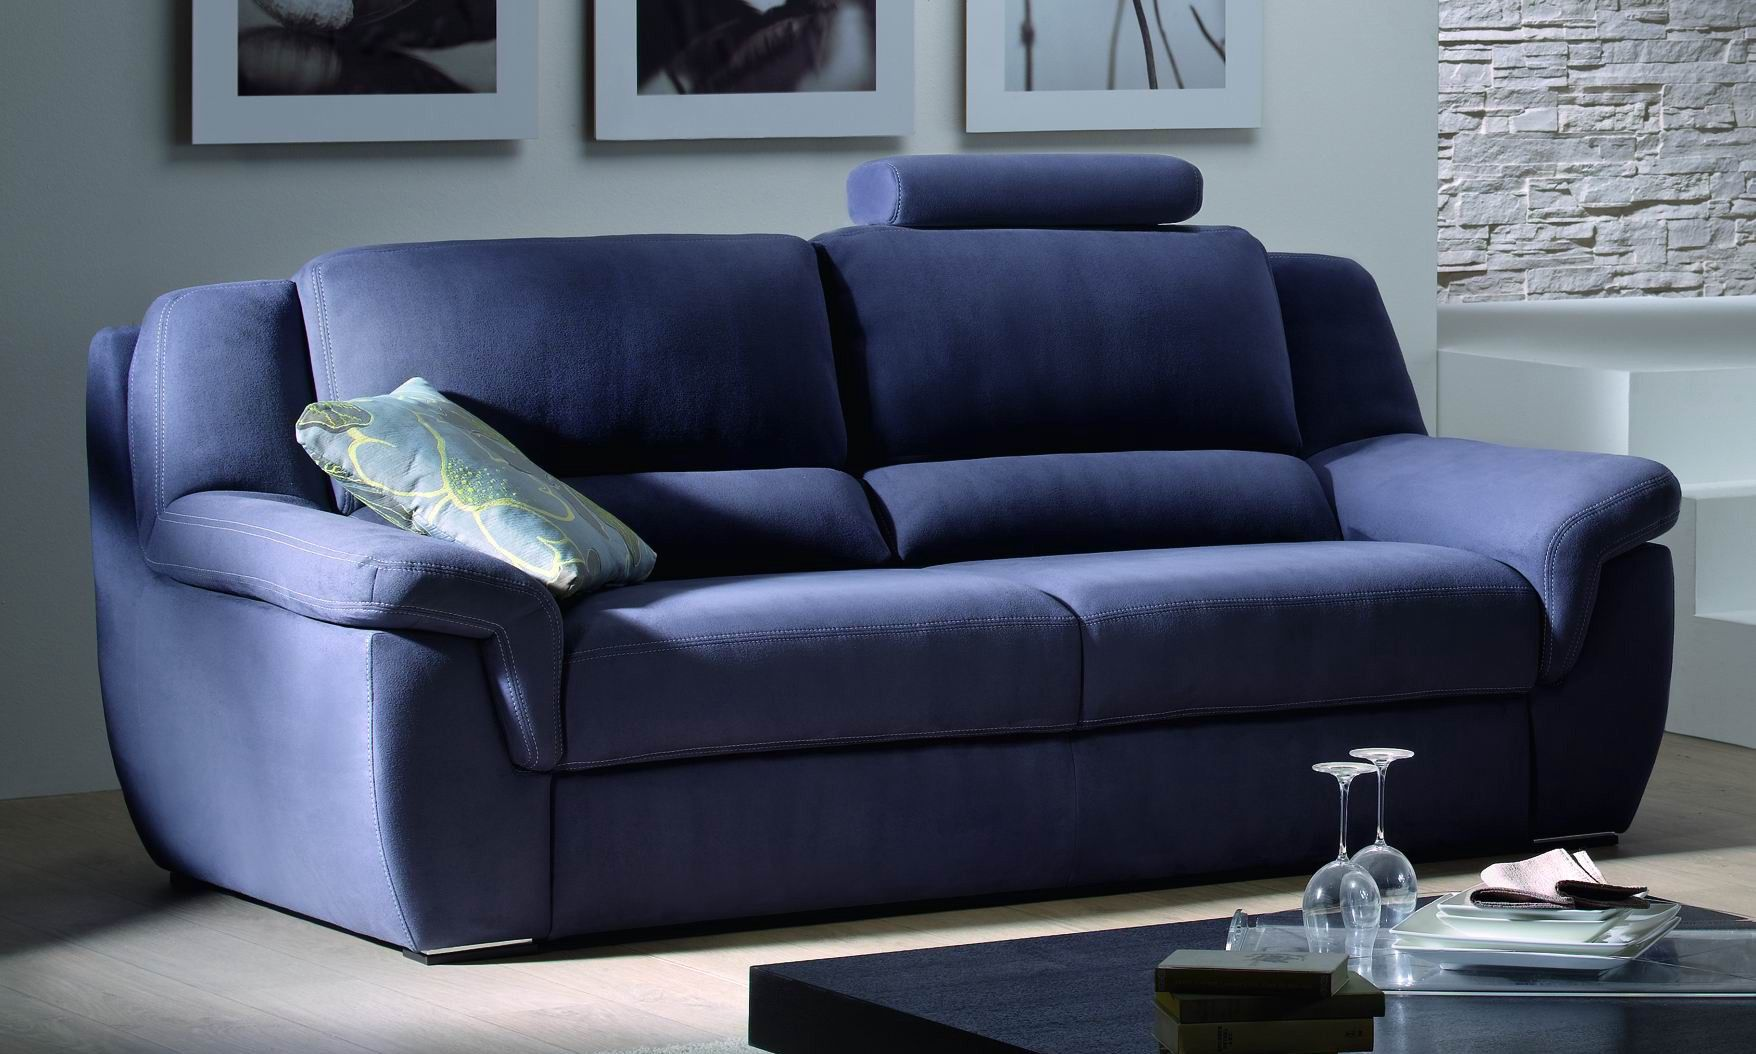 Best Sofa Brands In 2020 Best Sofa Brands Classy Furniture